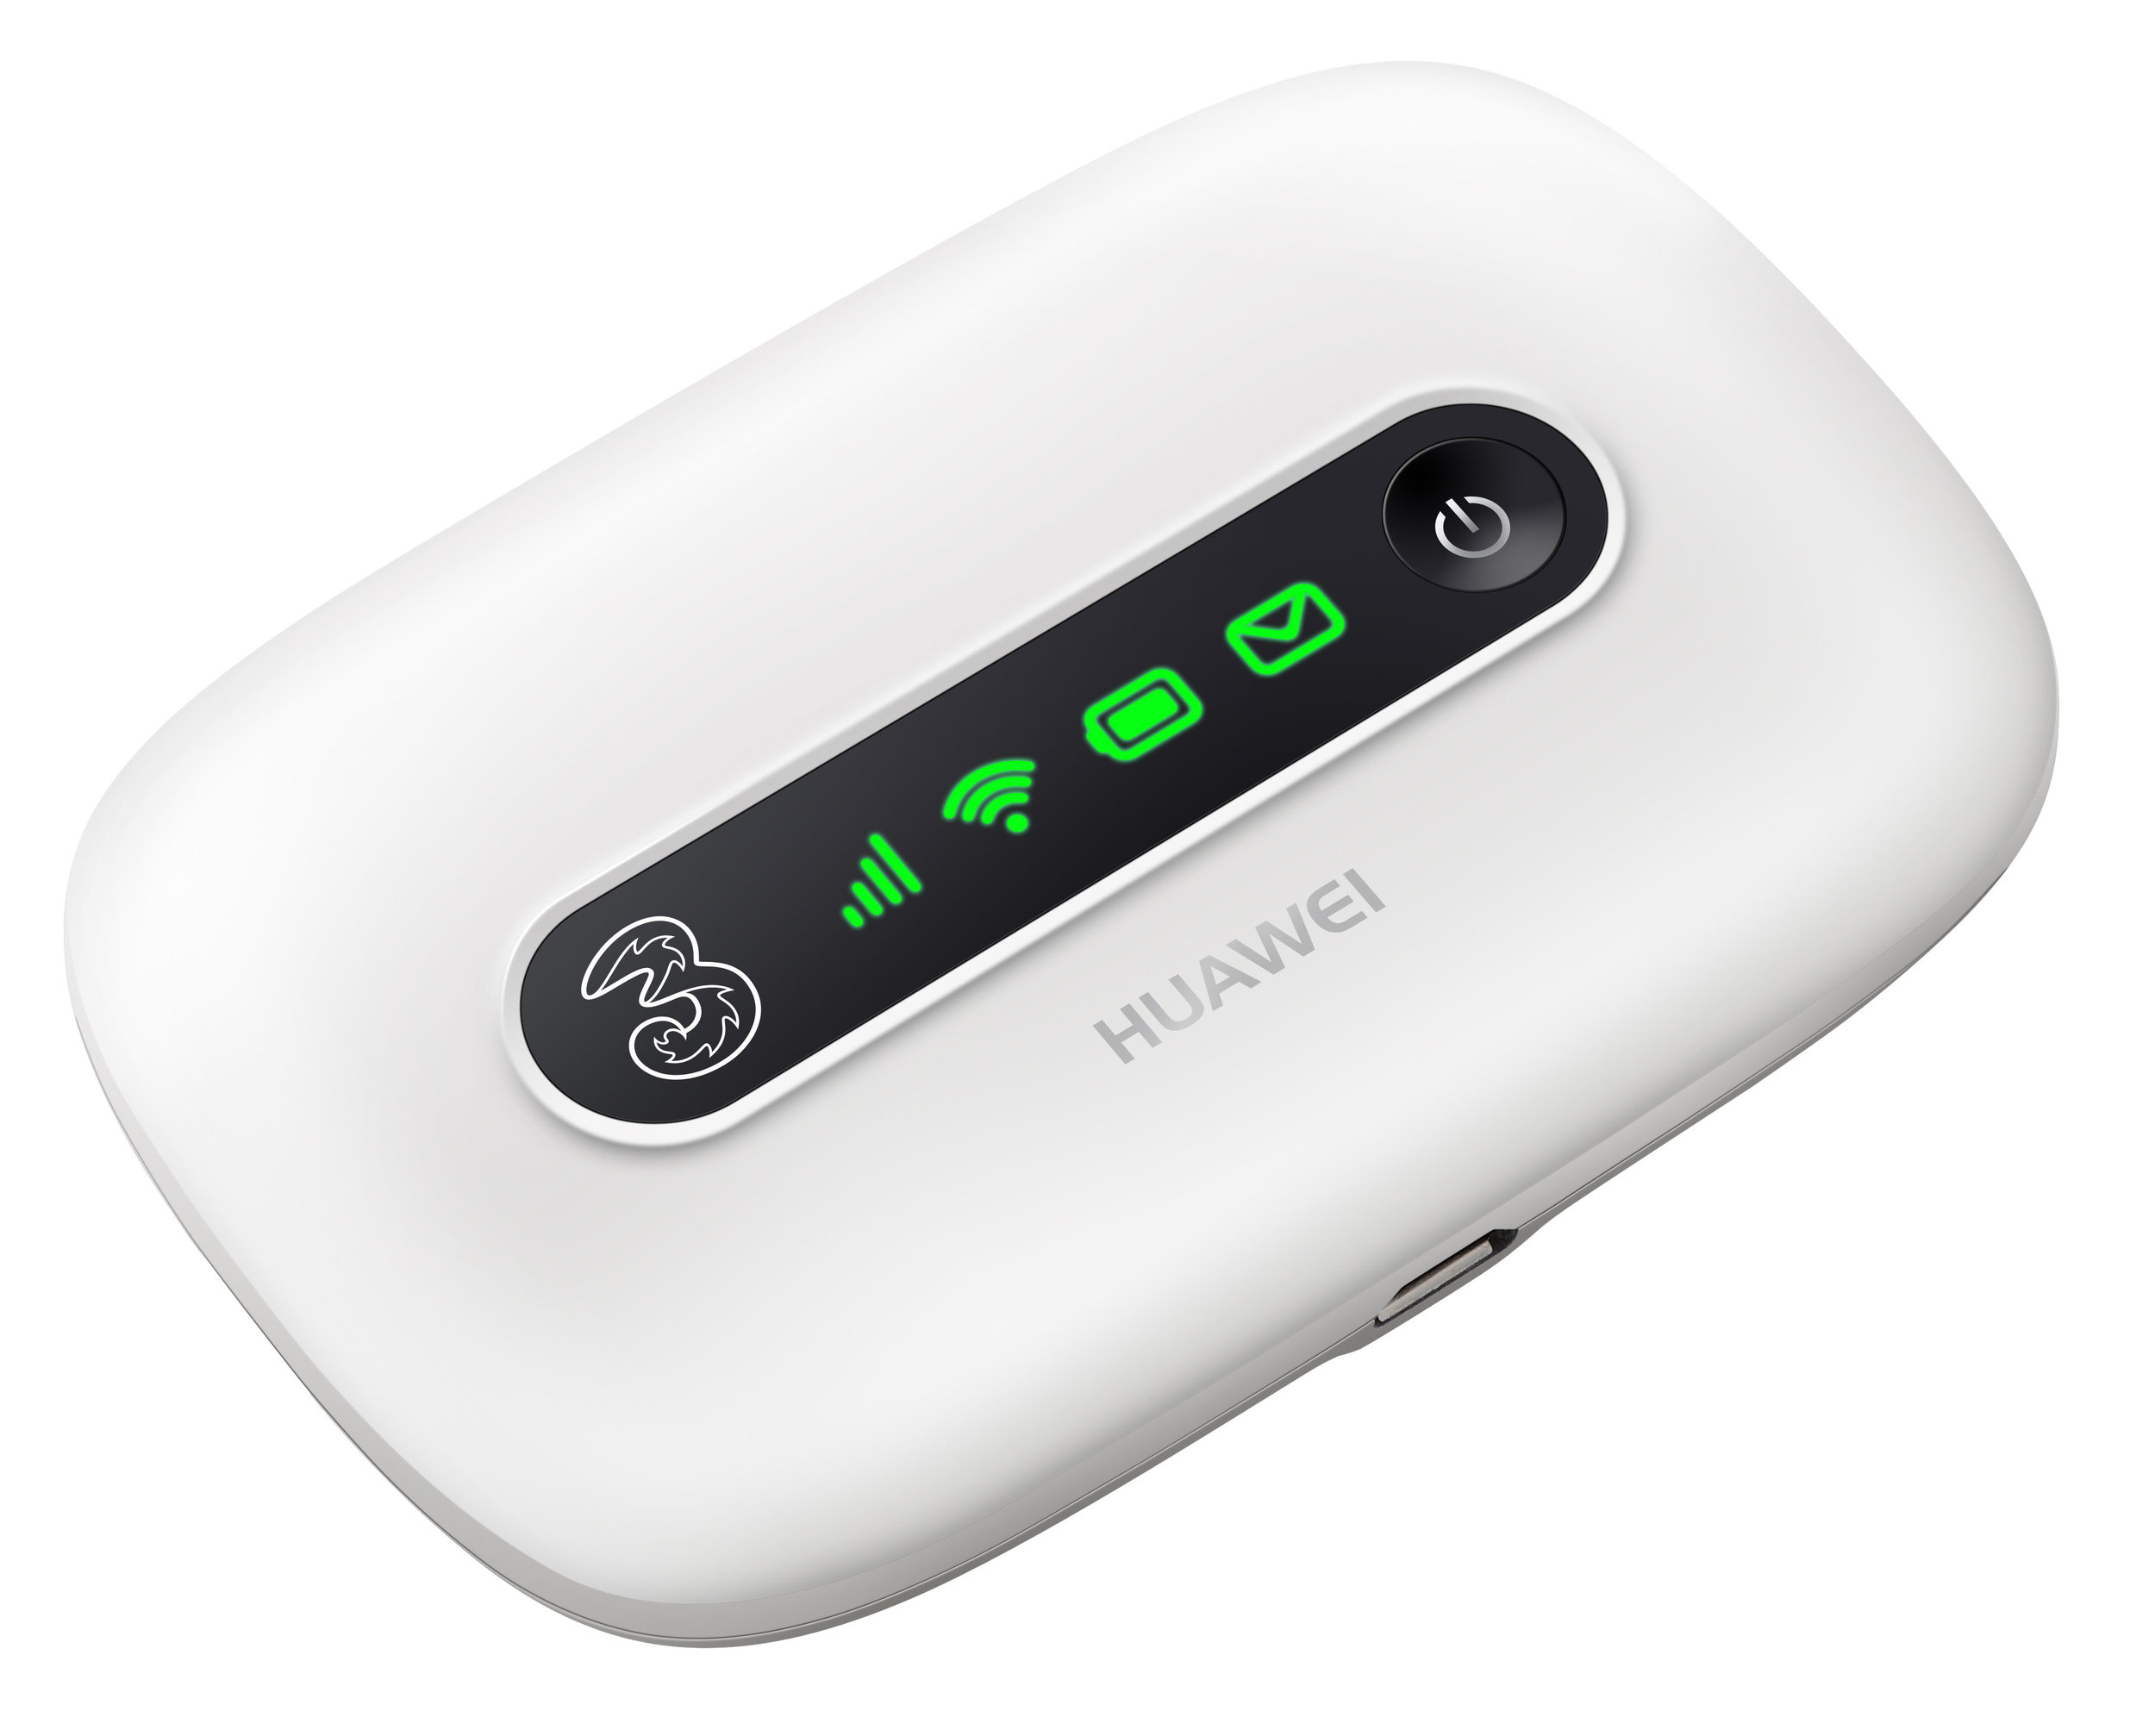 Mobile Data For Computers and Tablets - HomeFi, MiFi, Tethering, USB